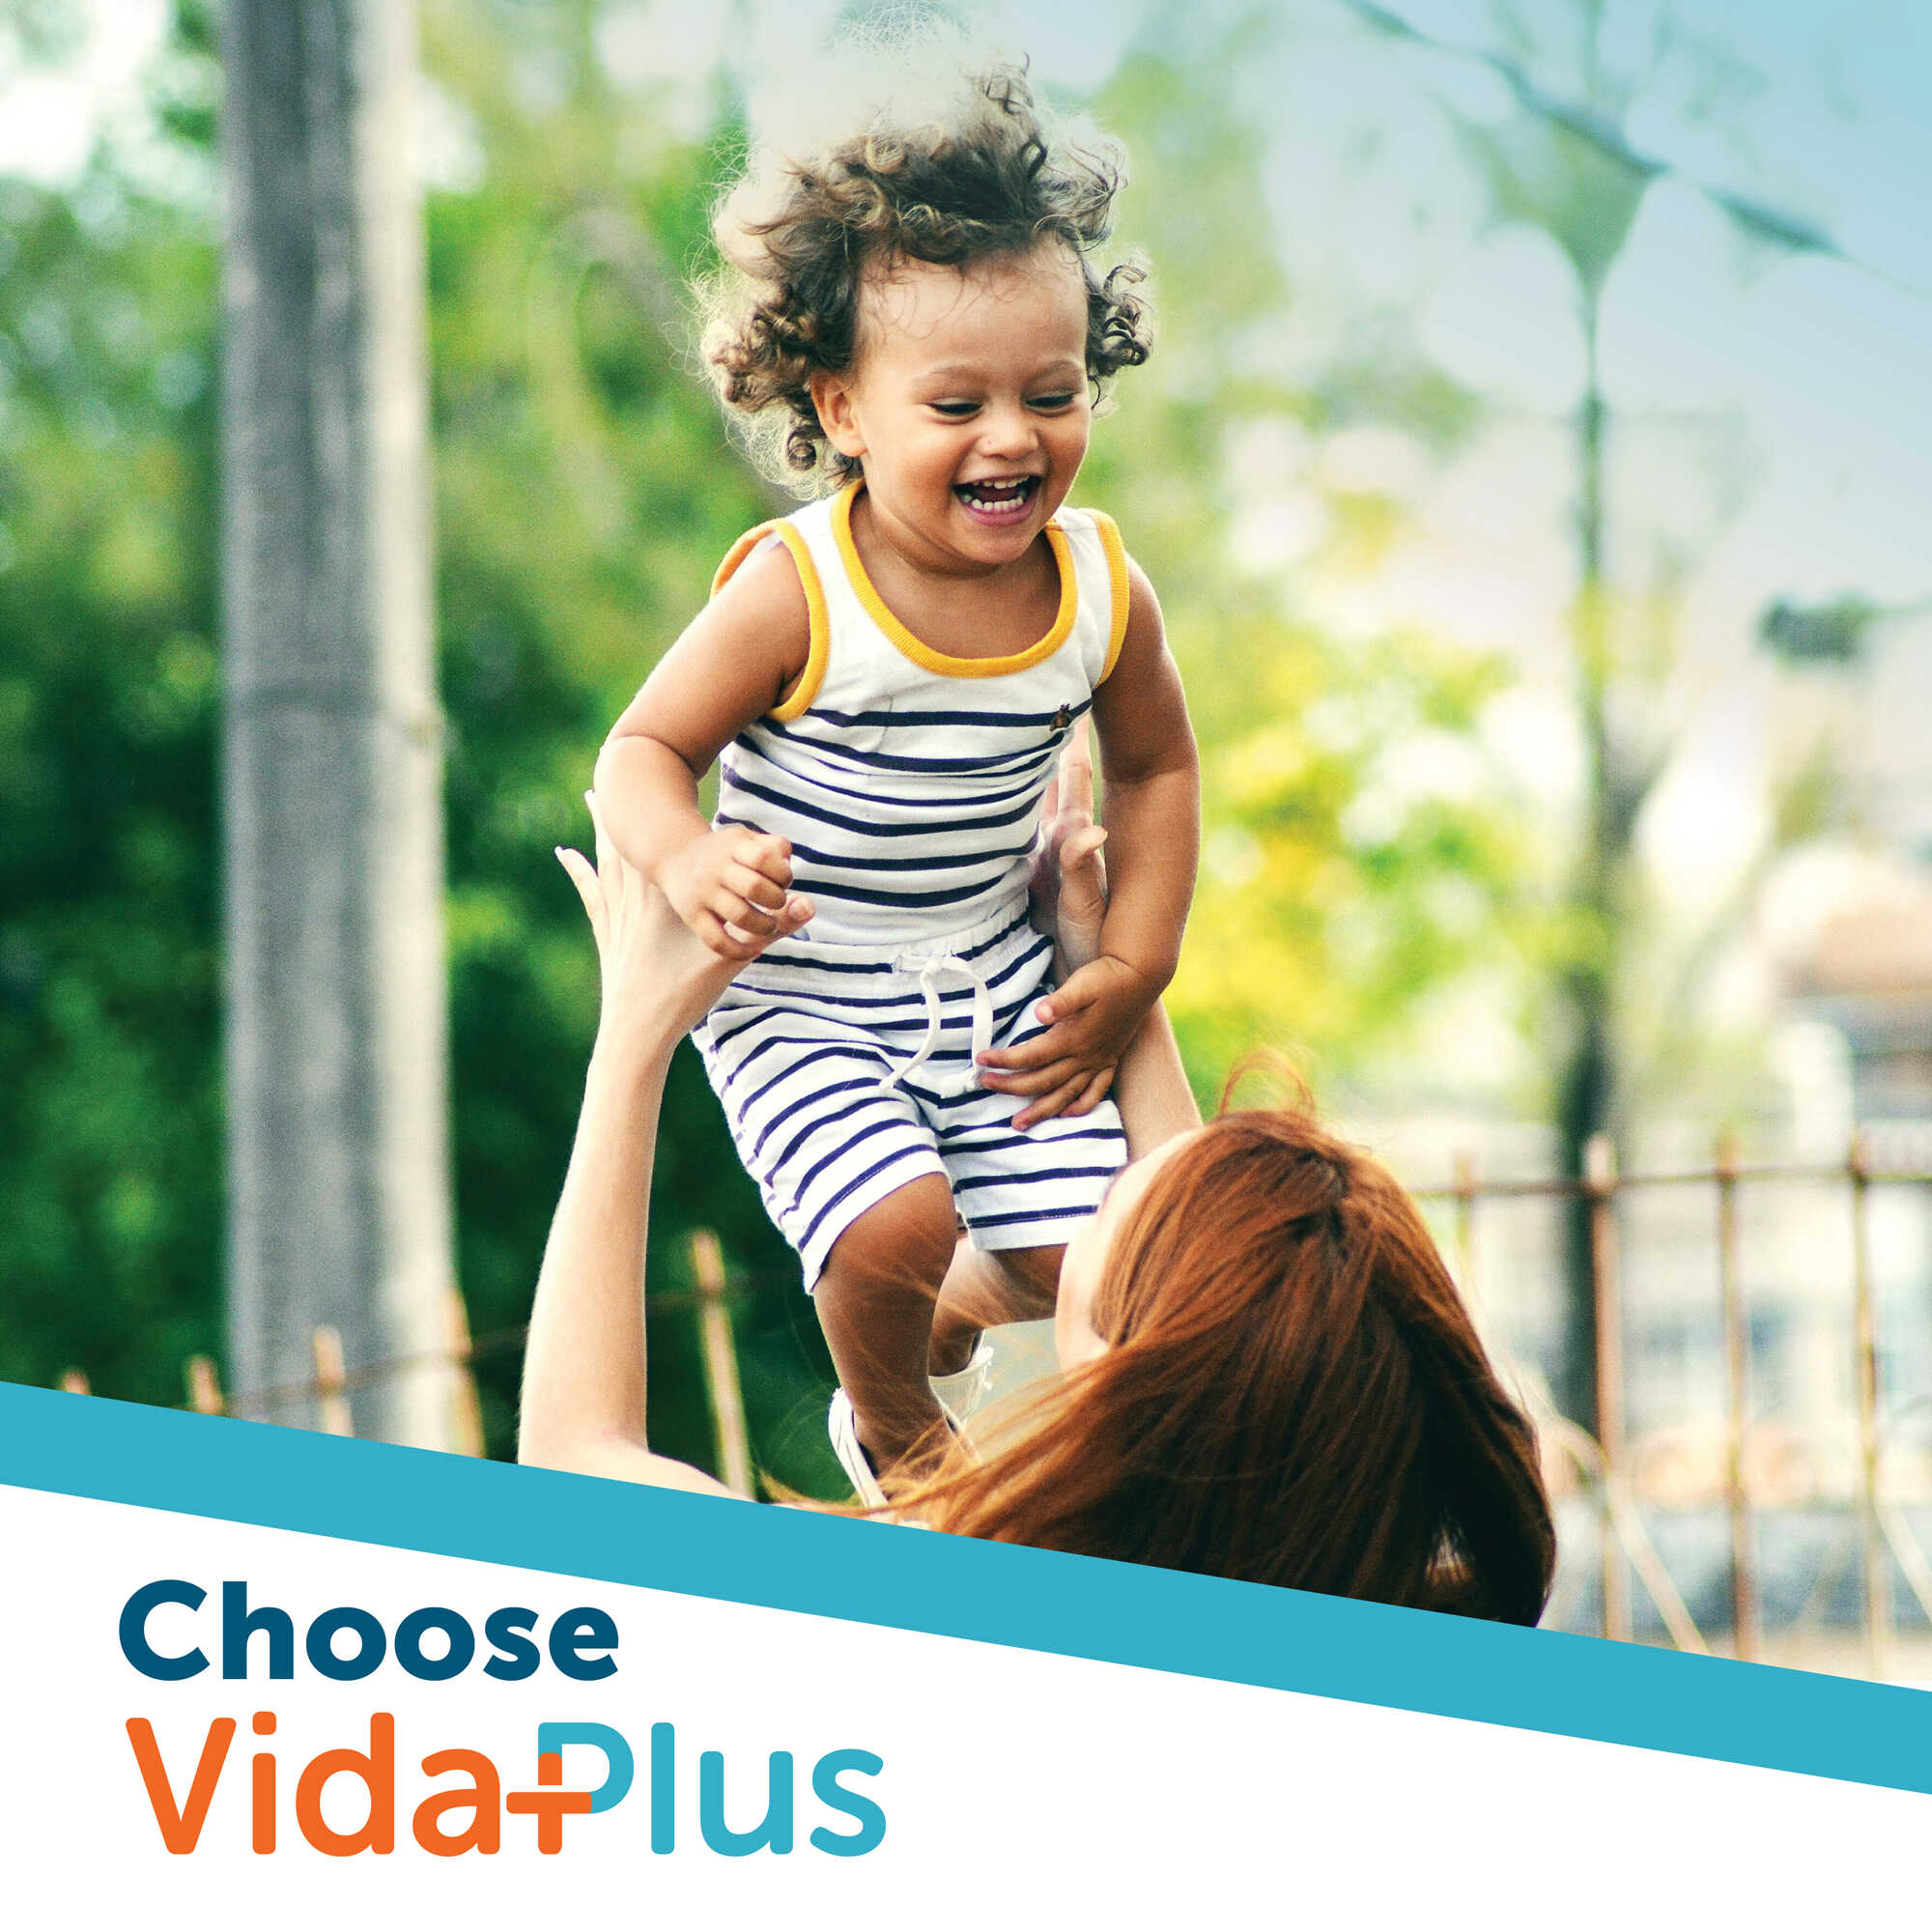 Choose Vidaplus